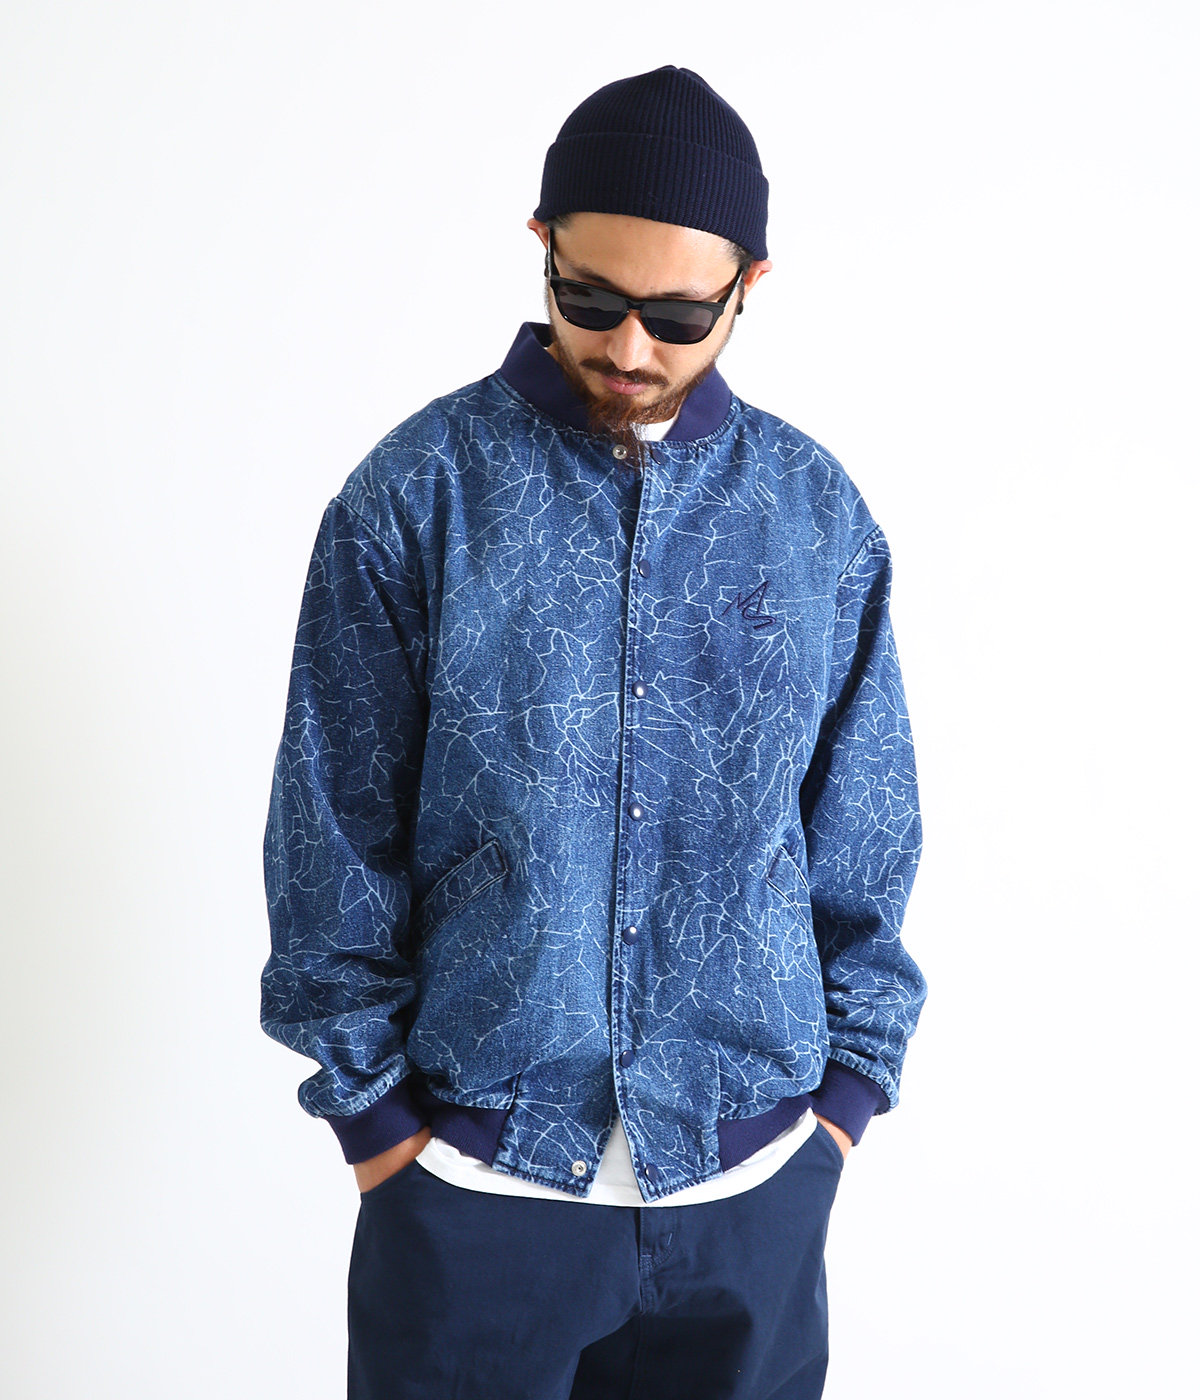 DENIM CRACK RIB JKT